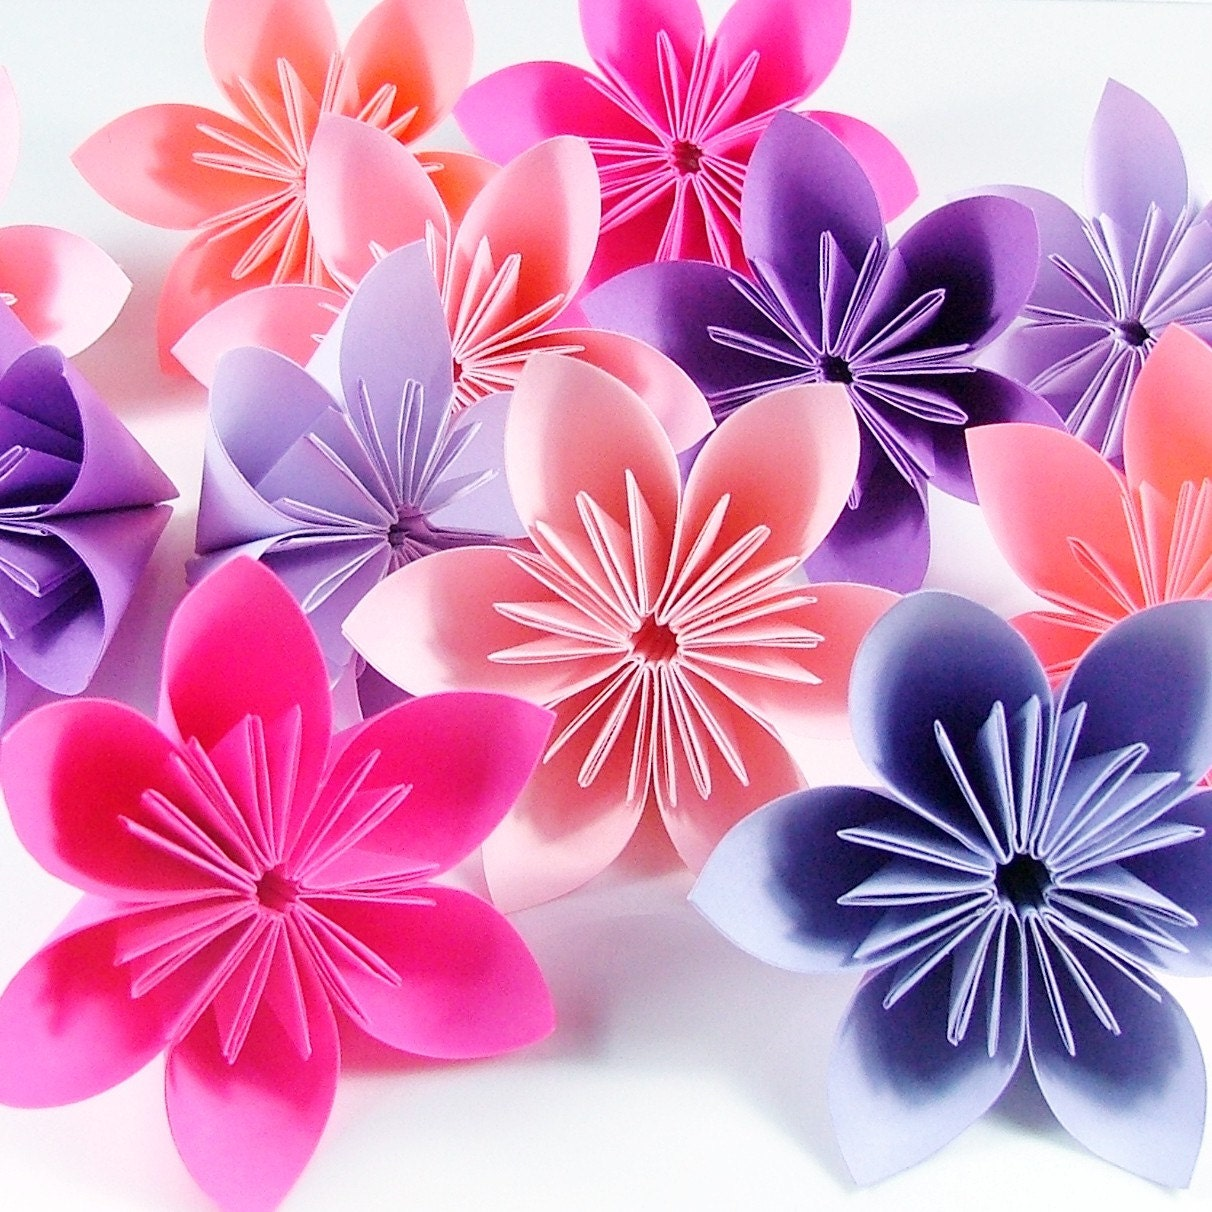 How To Make An Easy Origami Flower For Beginners